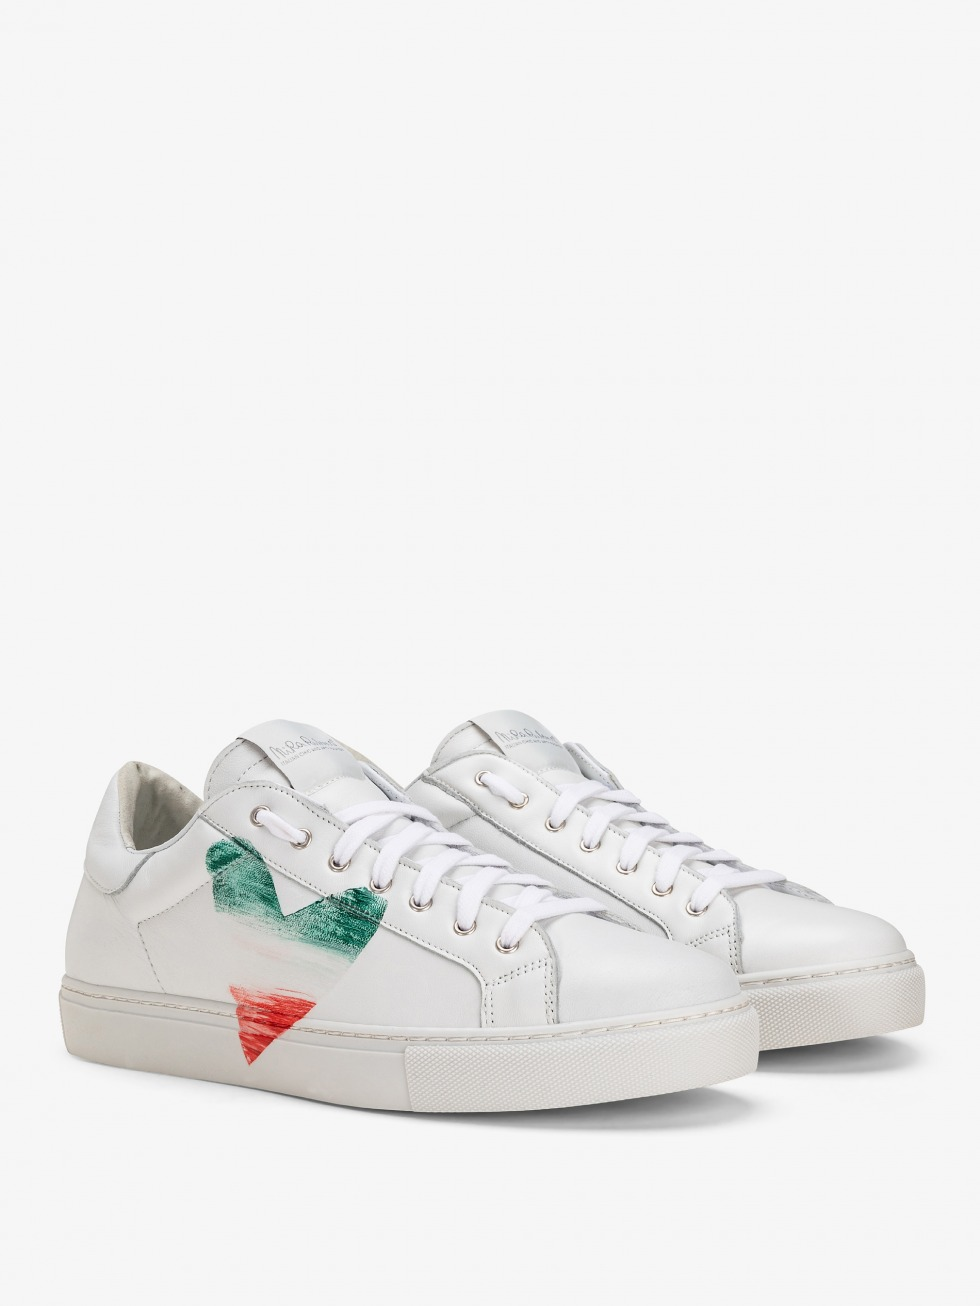 Sneakers Martini M - Cuore Flag Italy